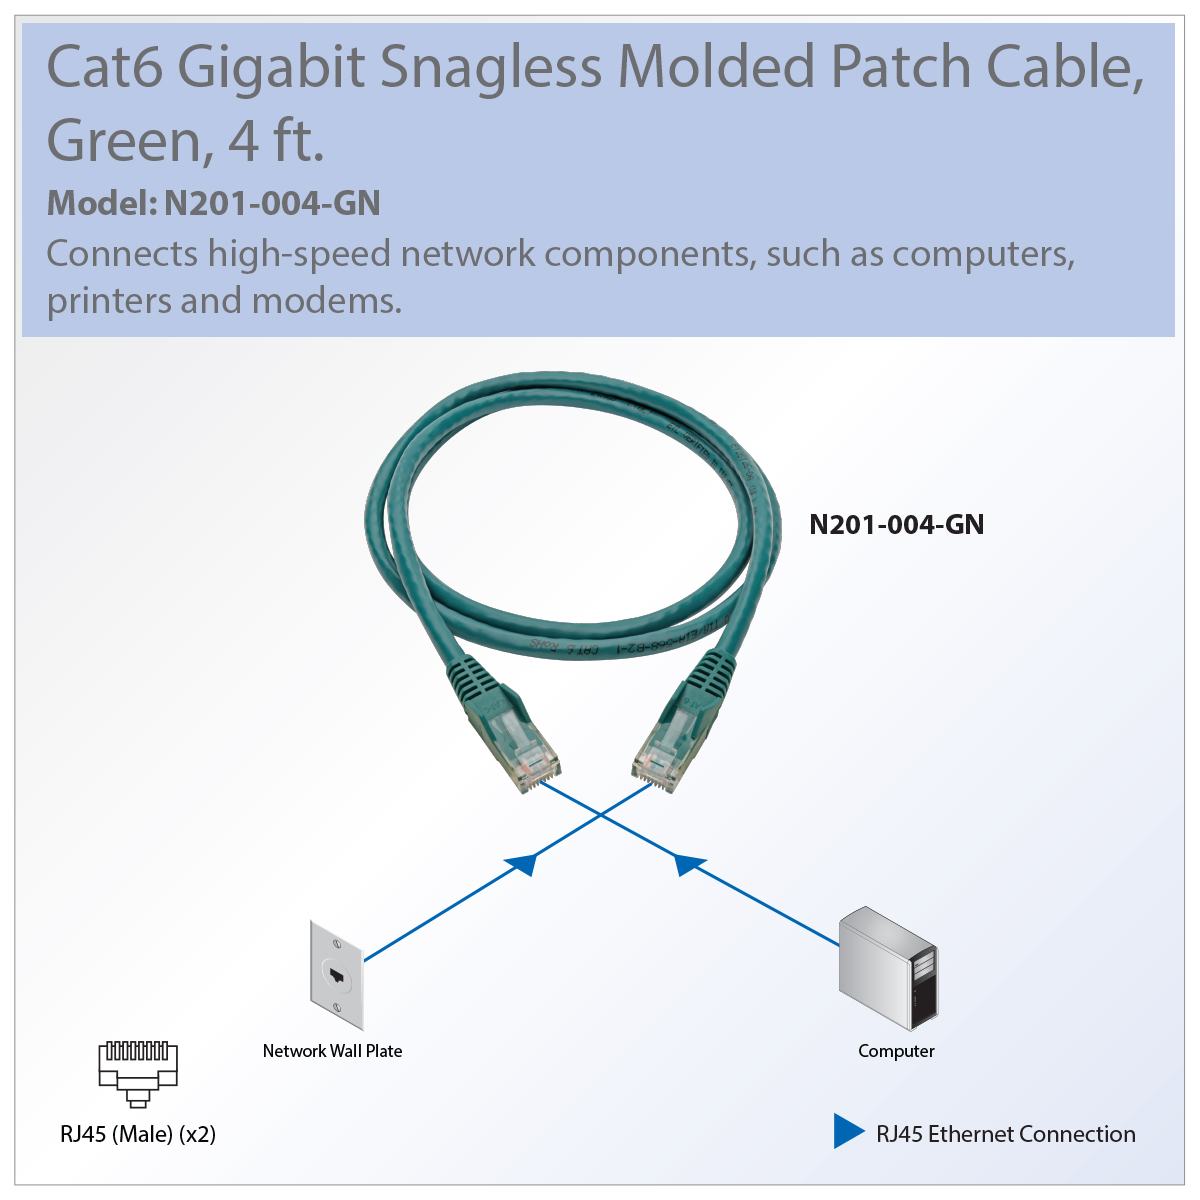 Tripp Lite Cat6 Gbe Snagless Molded Patch Cable Utp Green Rj45 M To 550mhz Standards For Switch Router Modem Recommended Connecting Components In Your Gigabit Ethernet Network